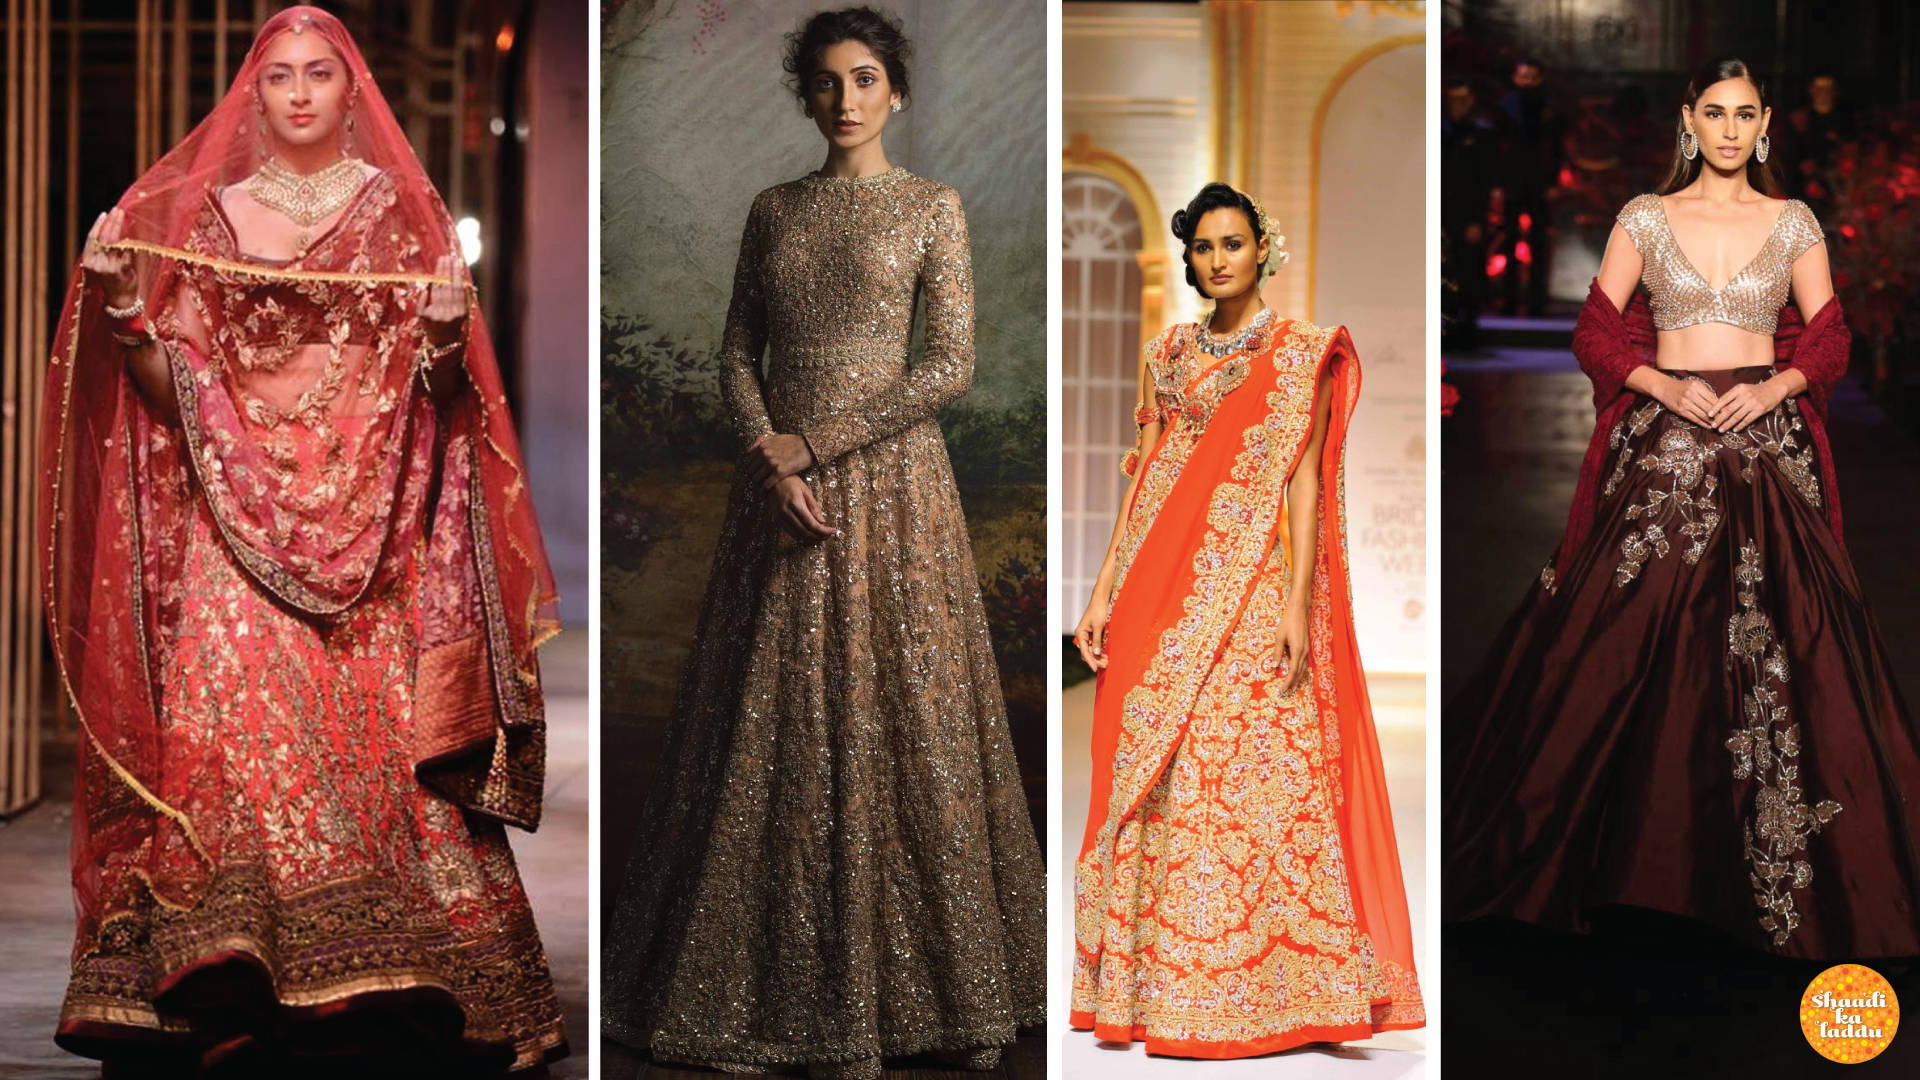 Indian bridal collection from different designers